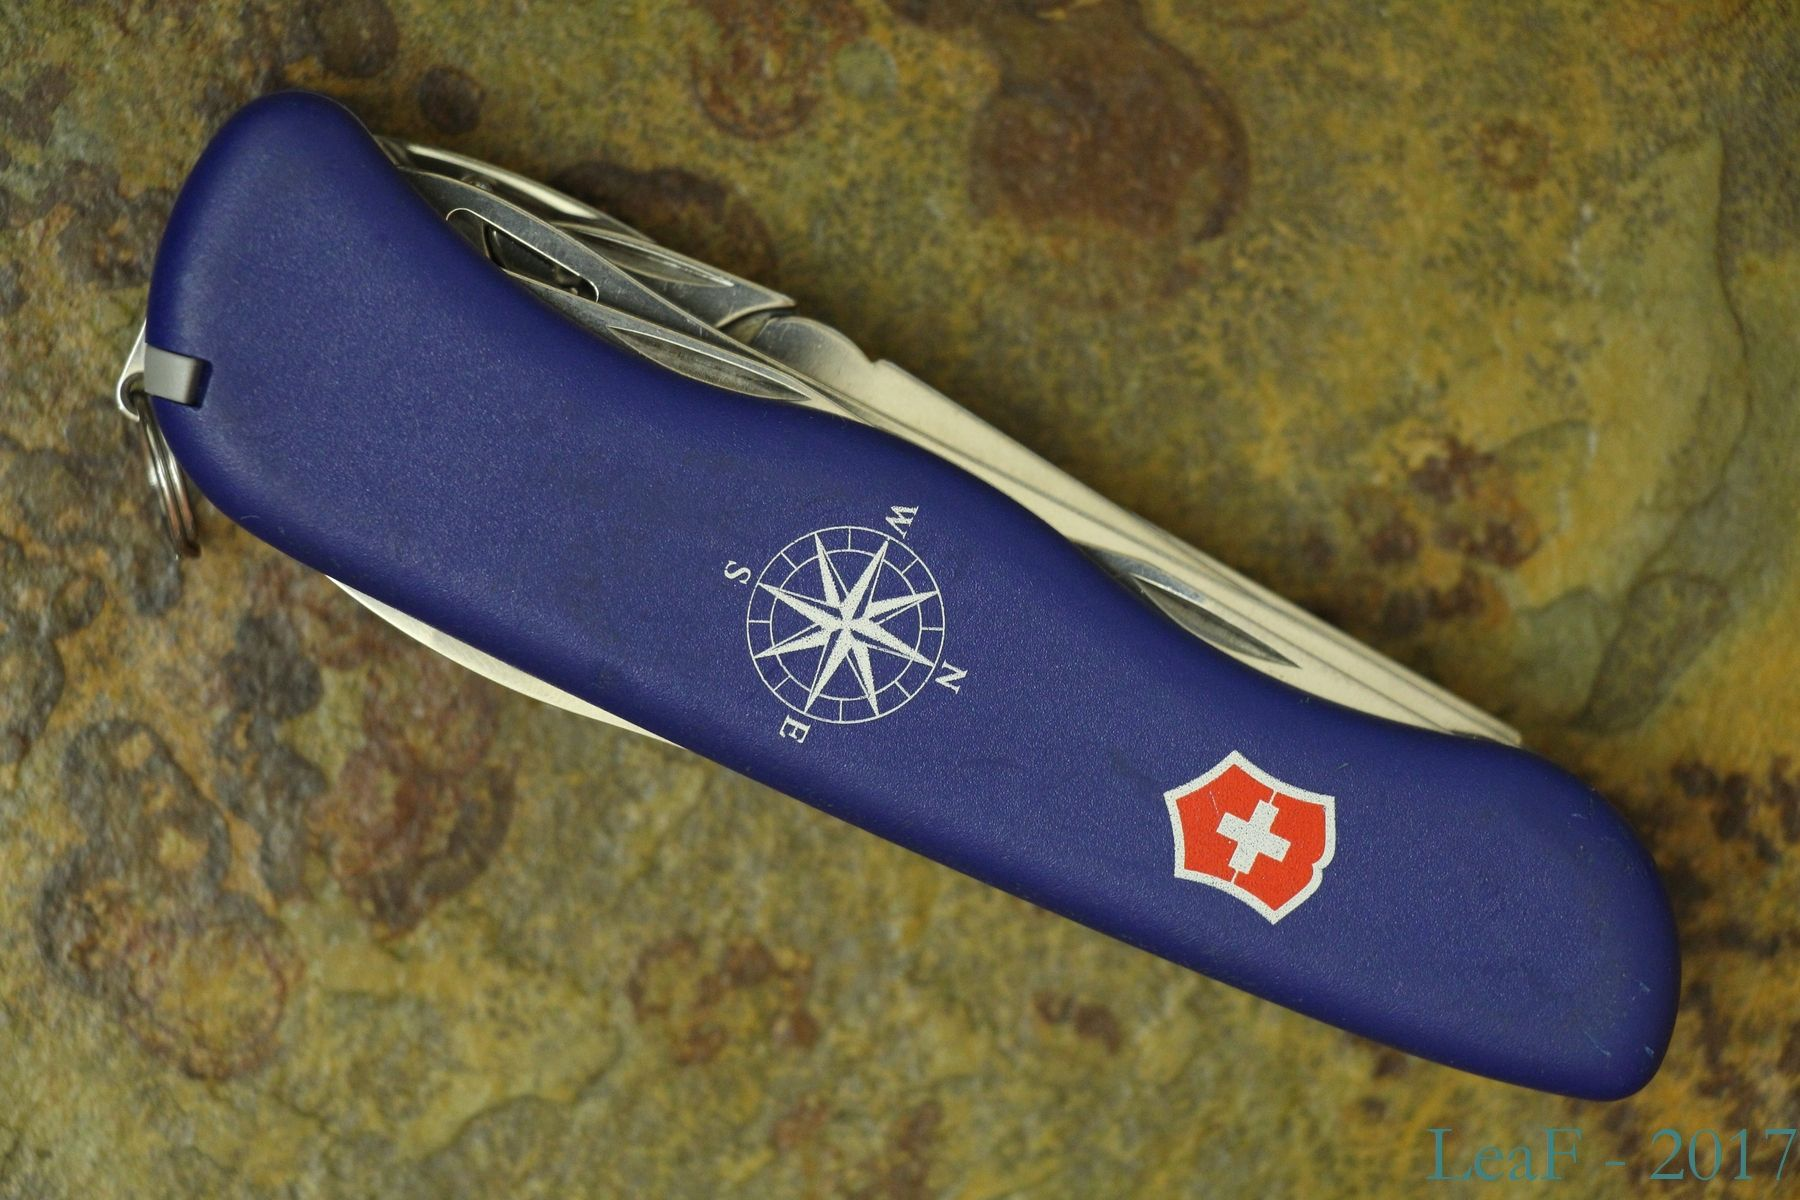 Marlin Spike Leaf S Victorinox Knives Collection